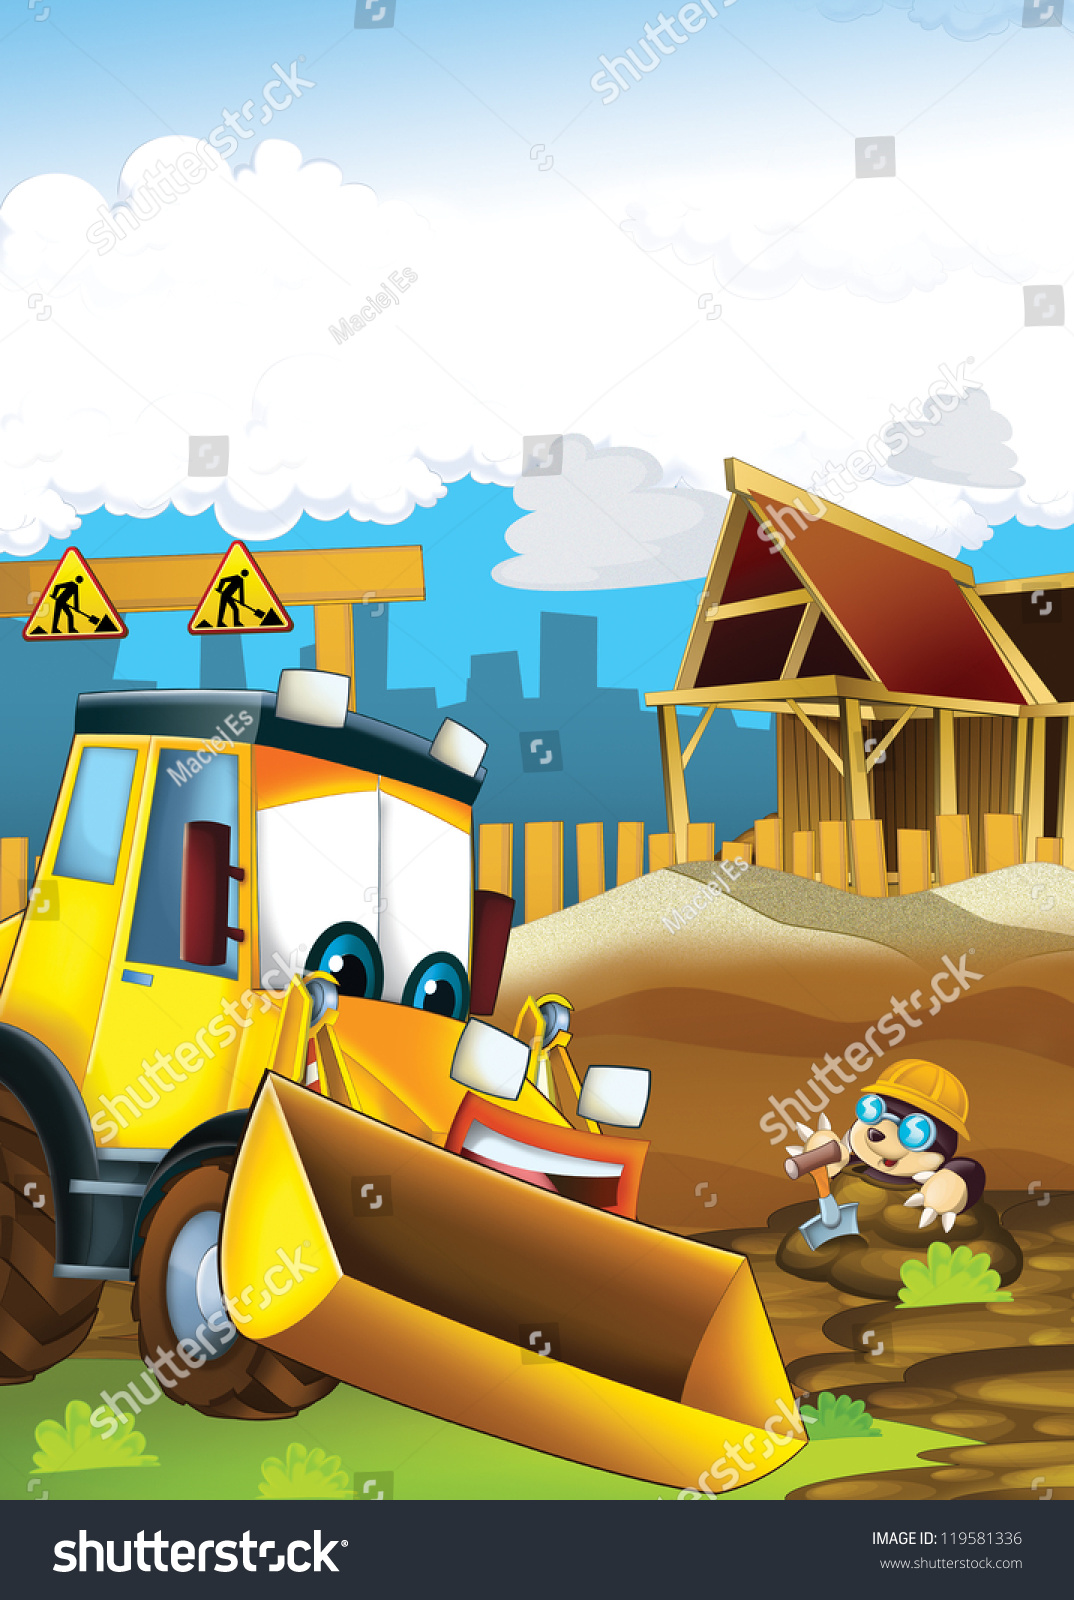 The Cartoon Digger - Illustration For The Children ...